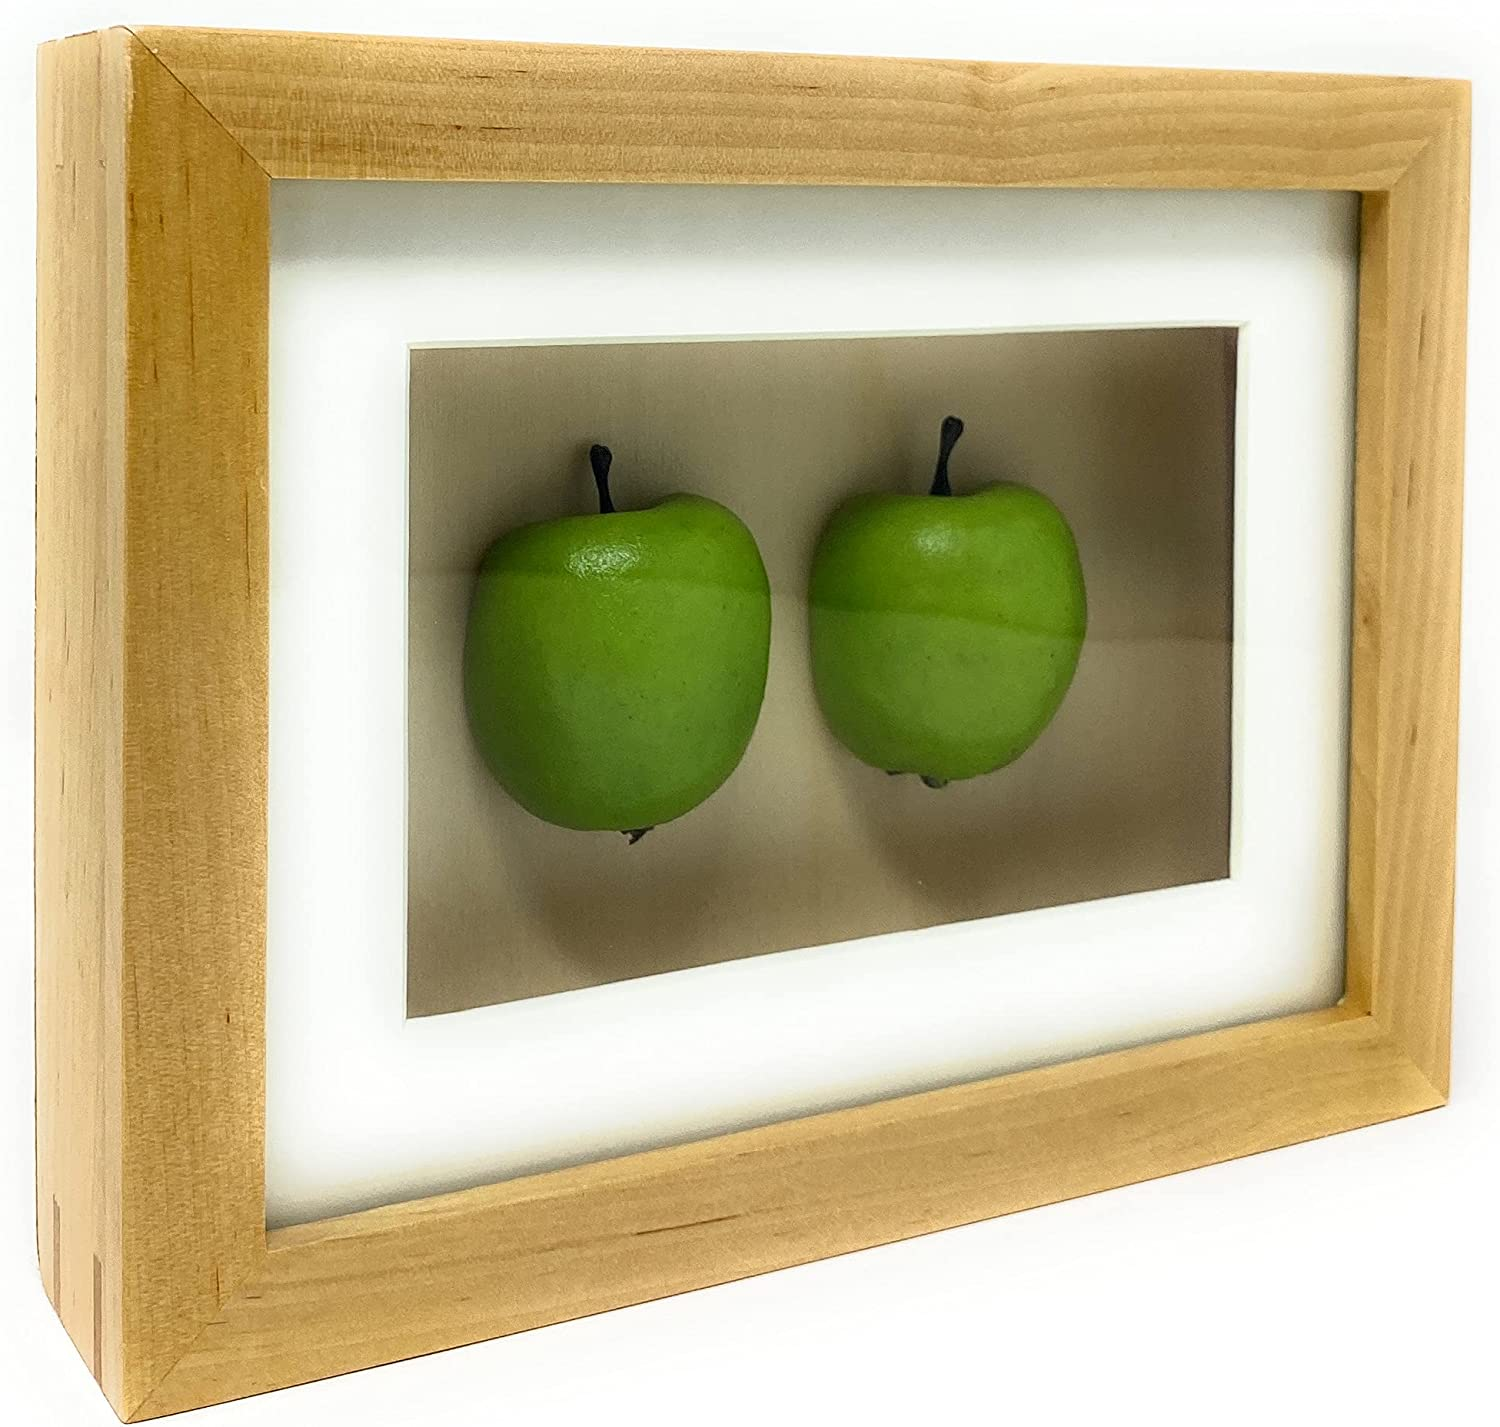 Kitchen Wall Art Decor Frames, 2 Green Apples Decor for Kitchen, Home and Restaurant Decorations - 8.1 x 6.2 x 1.5 inches (Green Apple)